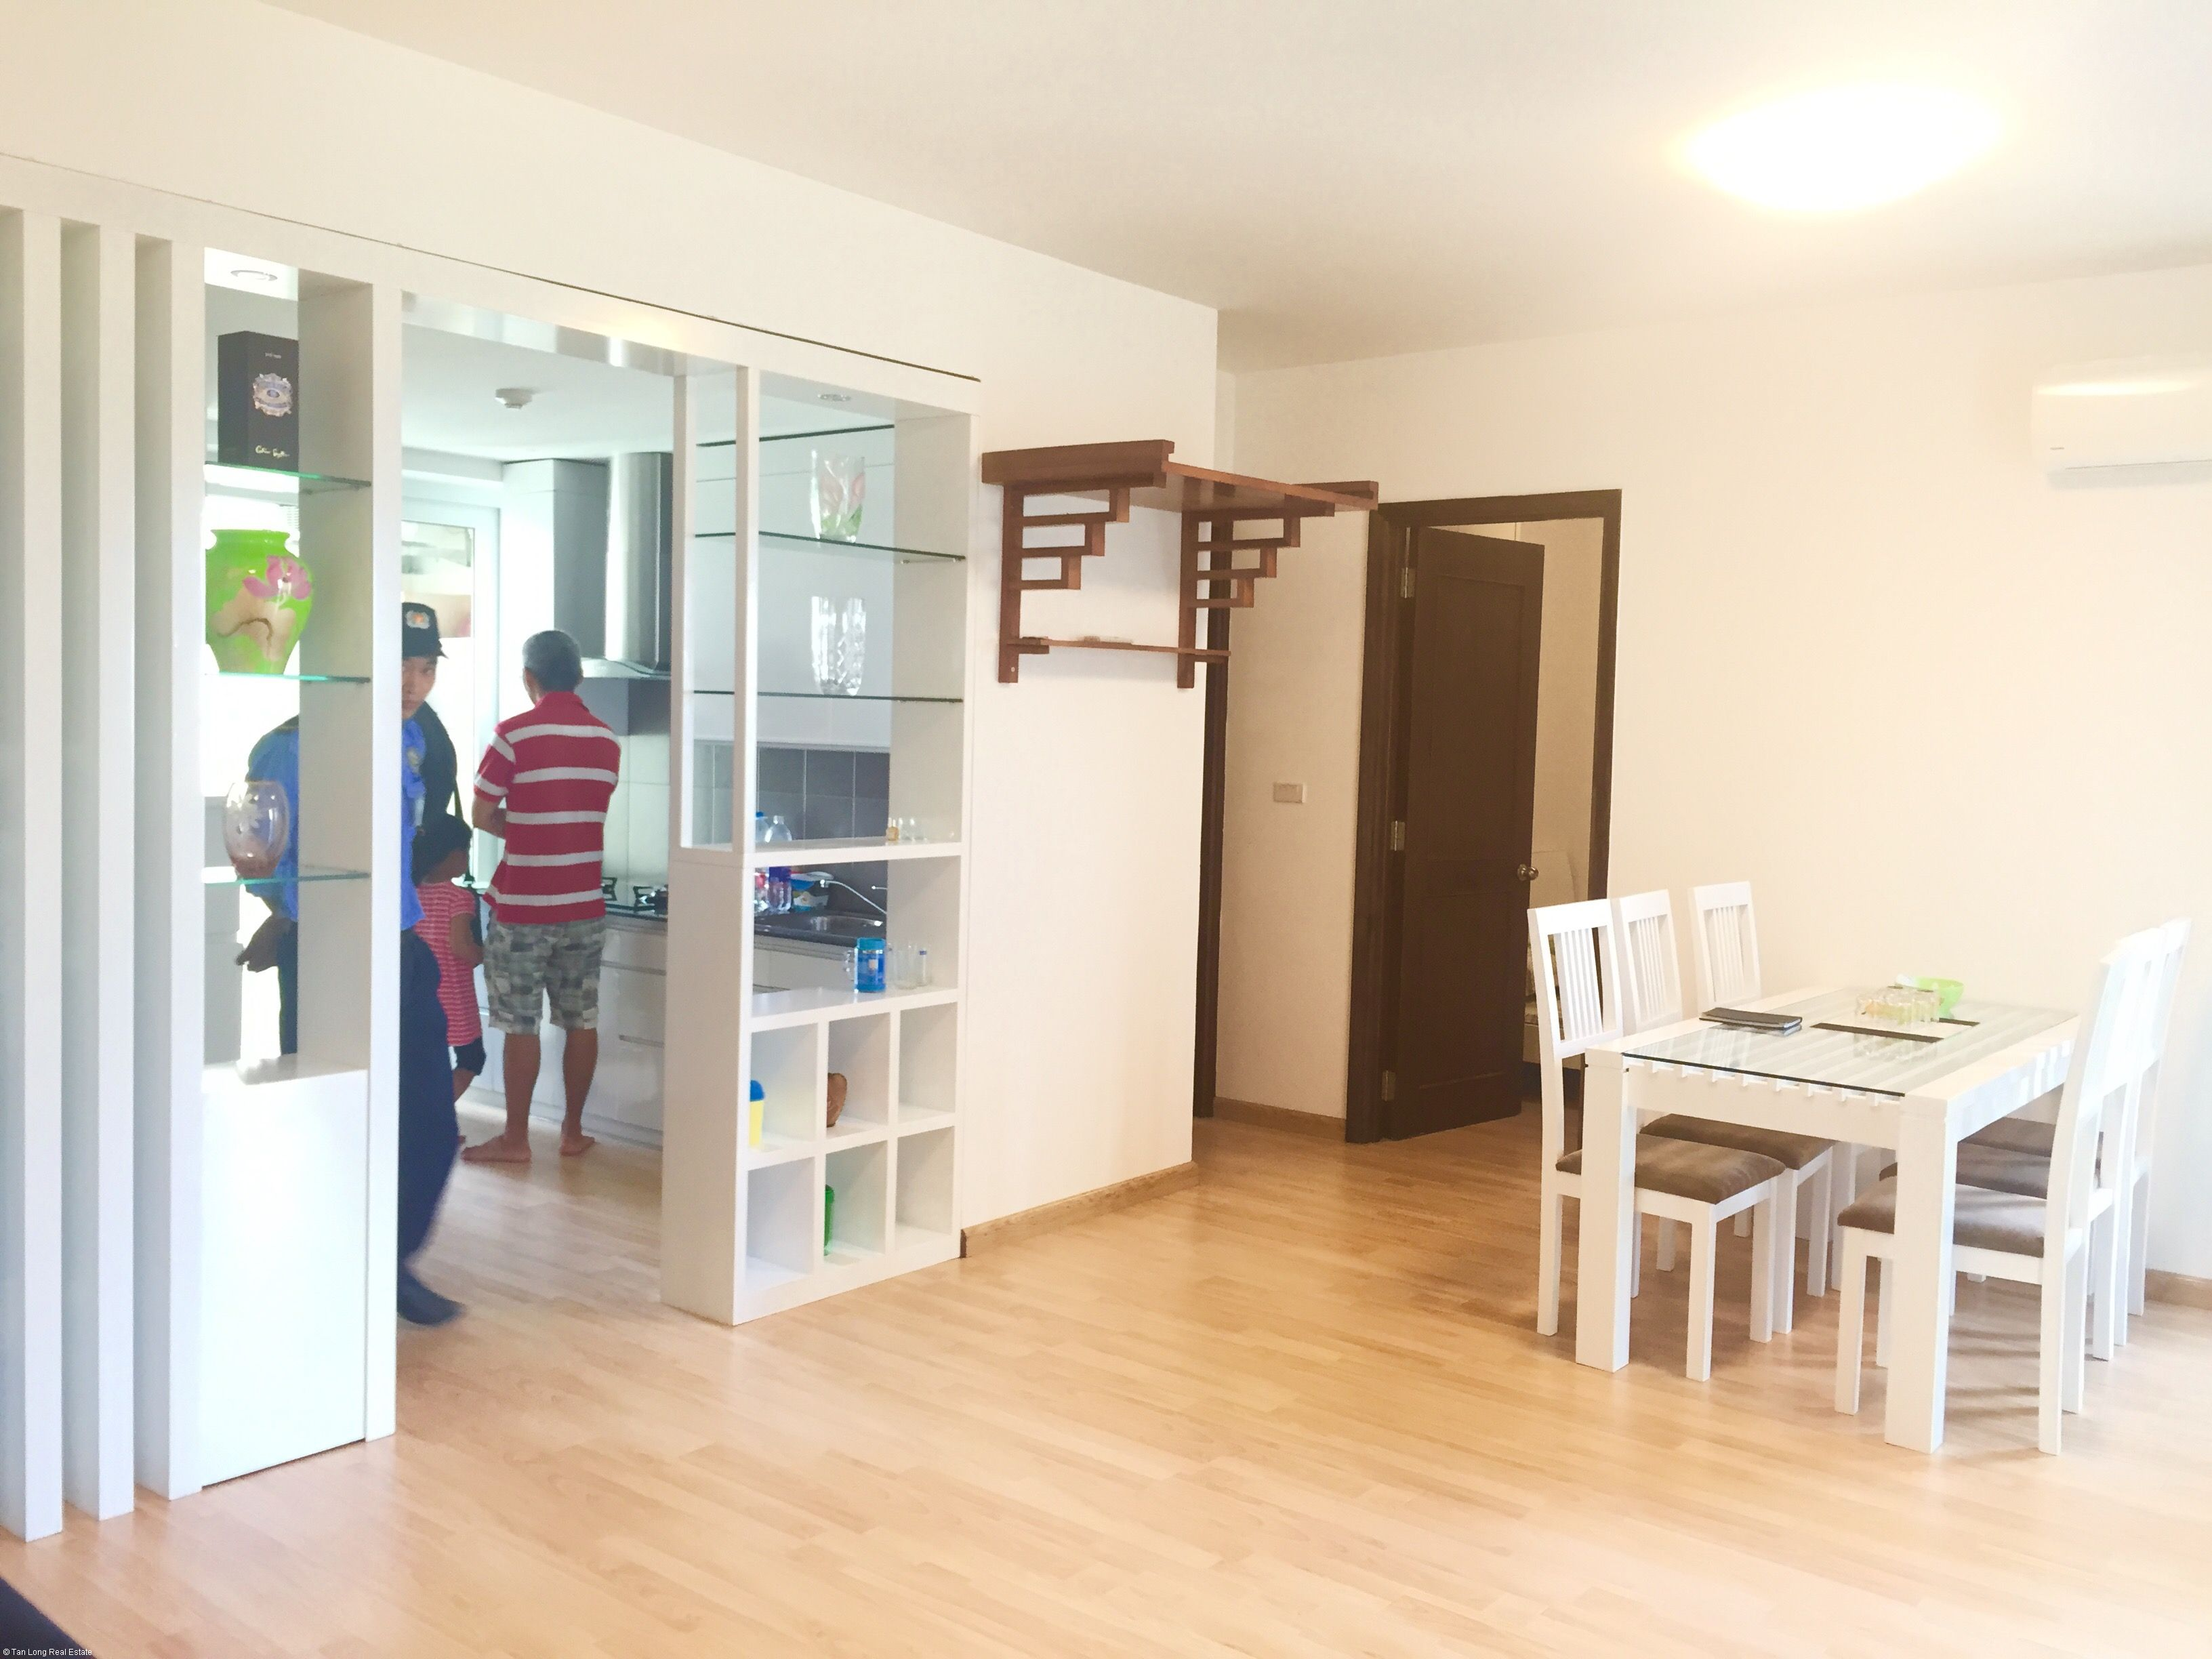 Stunning 02 bedroom apartment for rent in Ecopark, Hanoi.